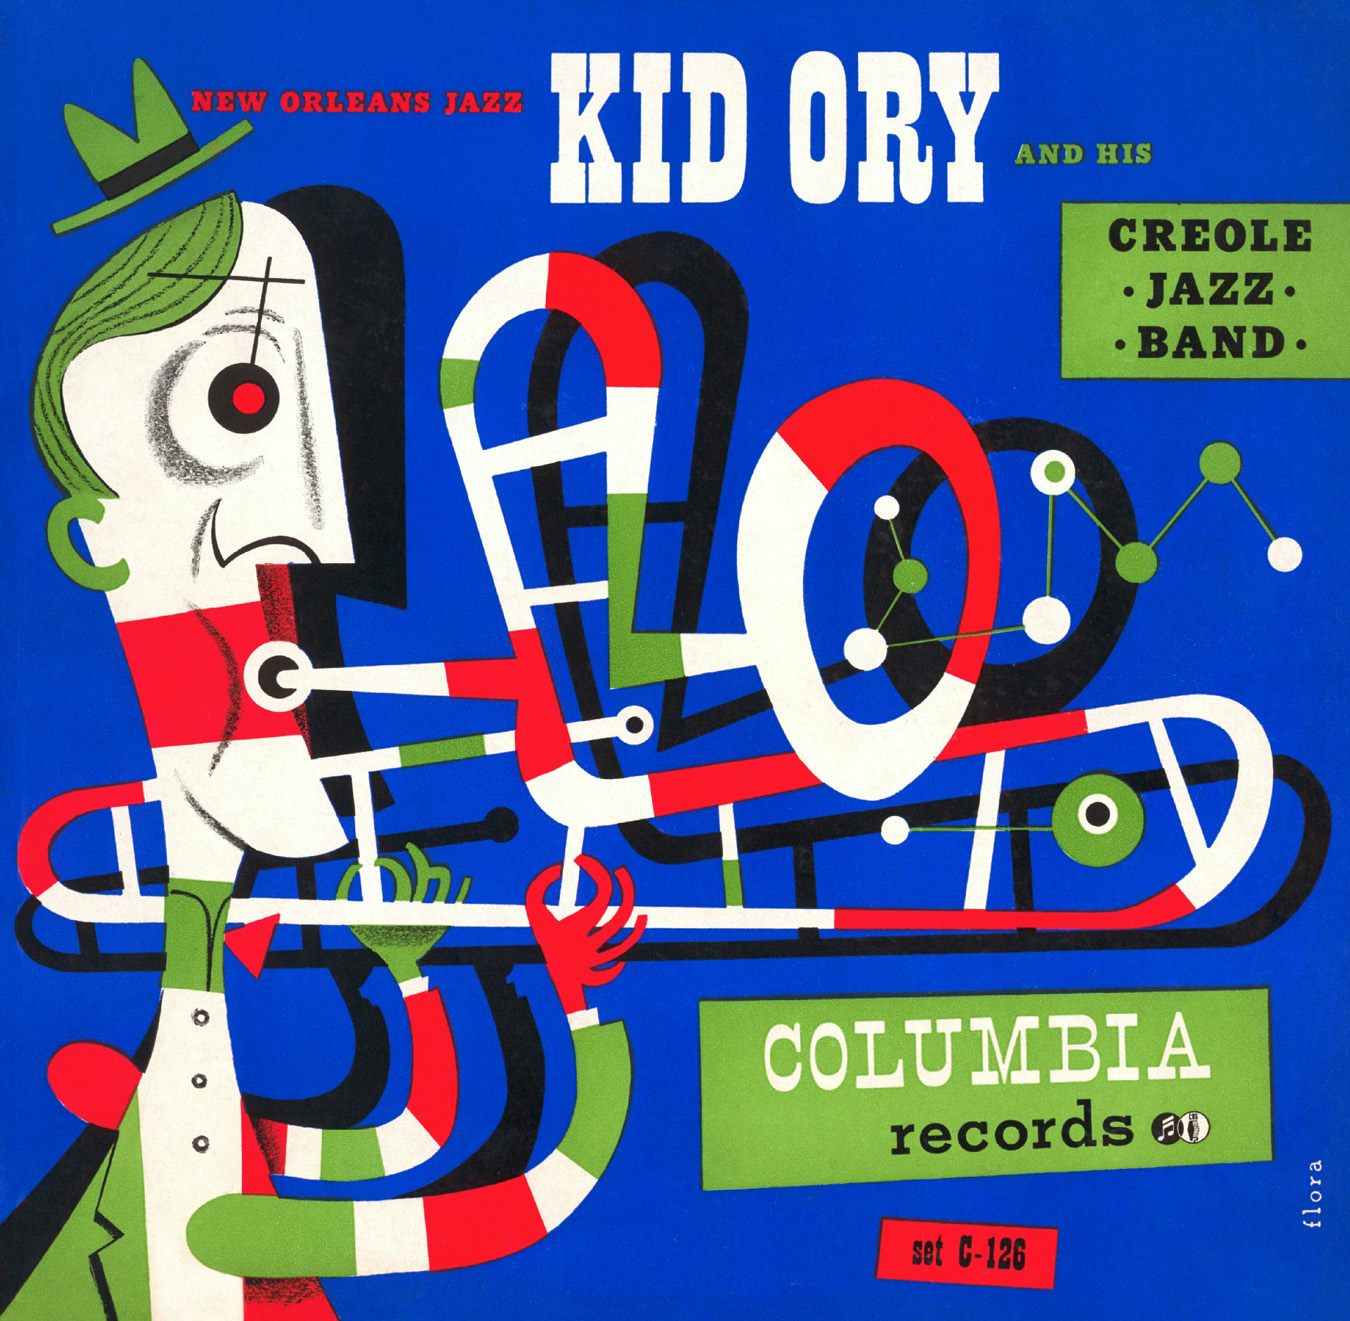 1947 Kid Ory and His Creole Jazz Band 78 album cover